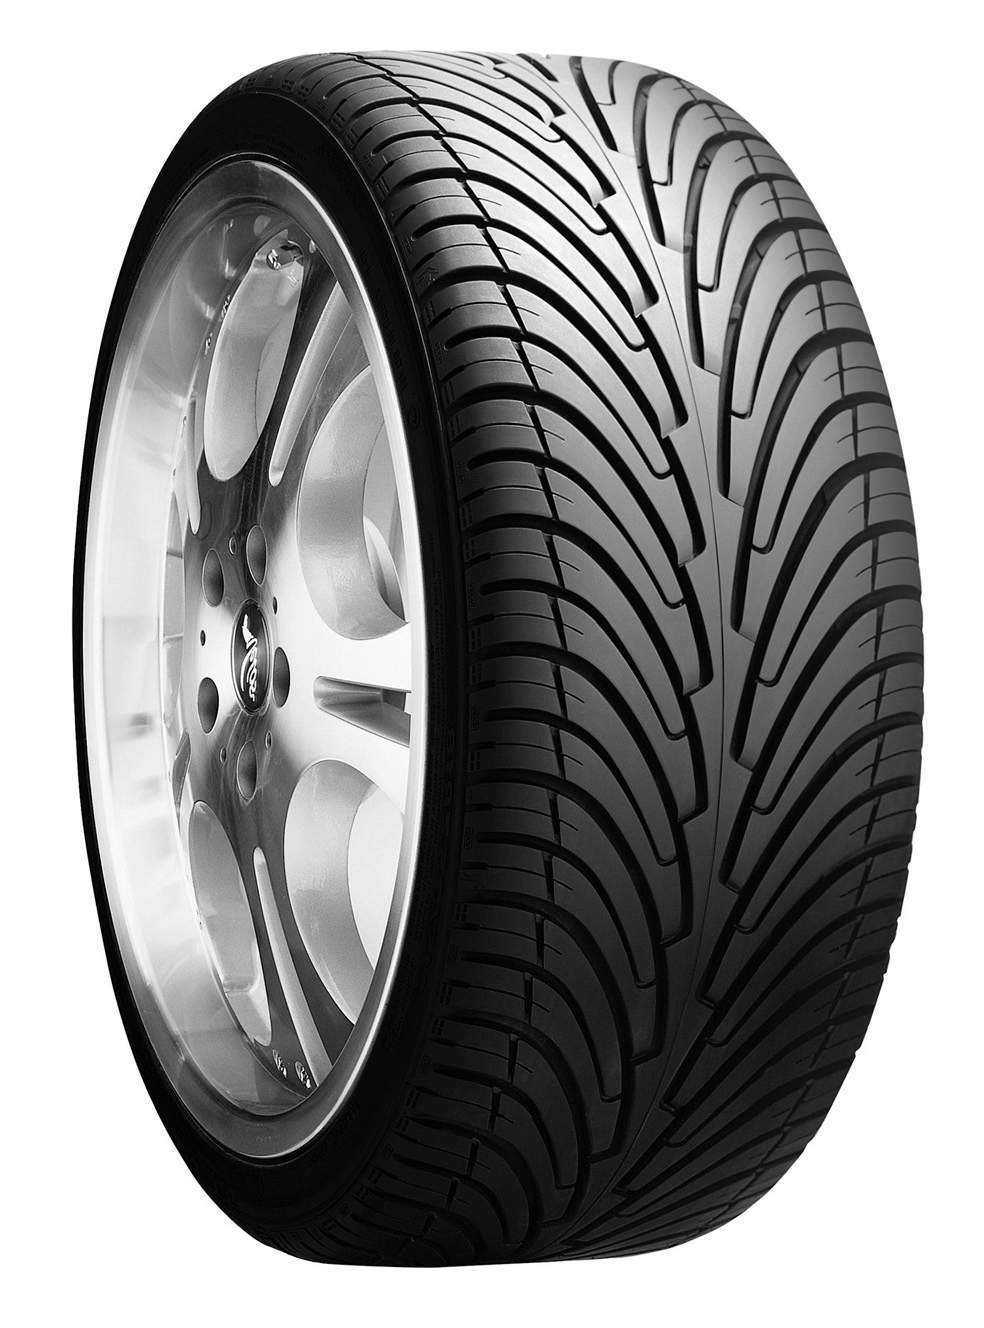 Low Pro Tire Size Michelin X Multi Z 295 80r225 Ban Truk Do Profile Tires Wear Faster Ford Mustang Forum